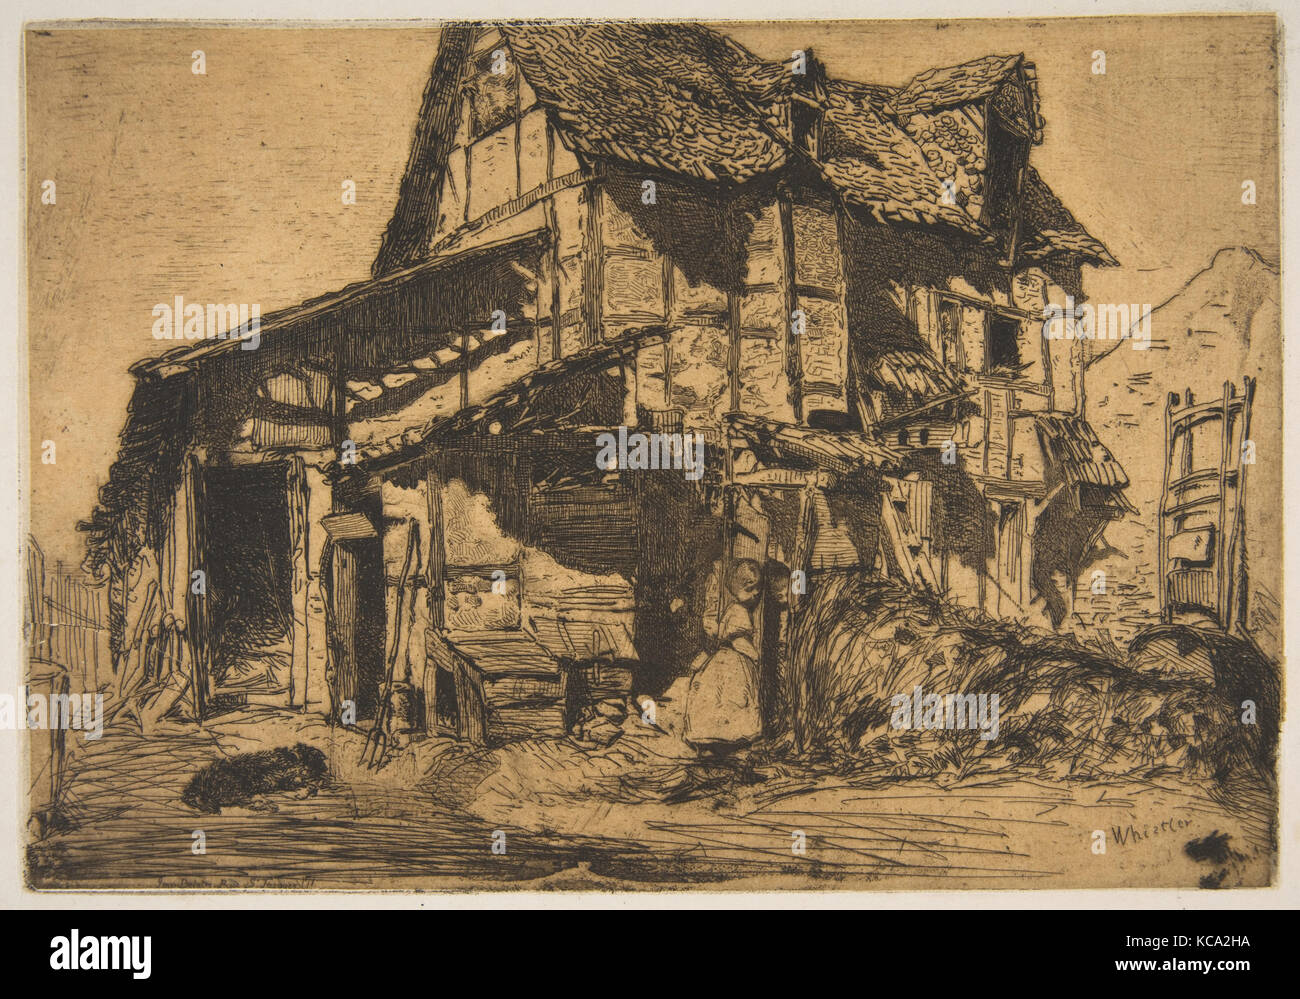 The Unsafe Tenement (The Old Farm), James McNeill Whistler, 1858 - Stock Image